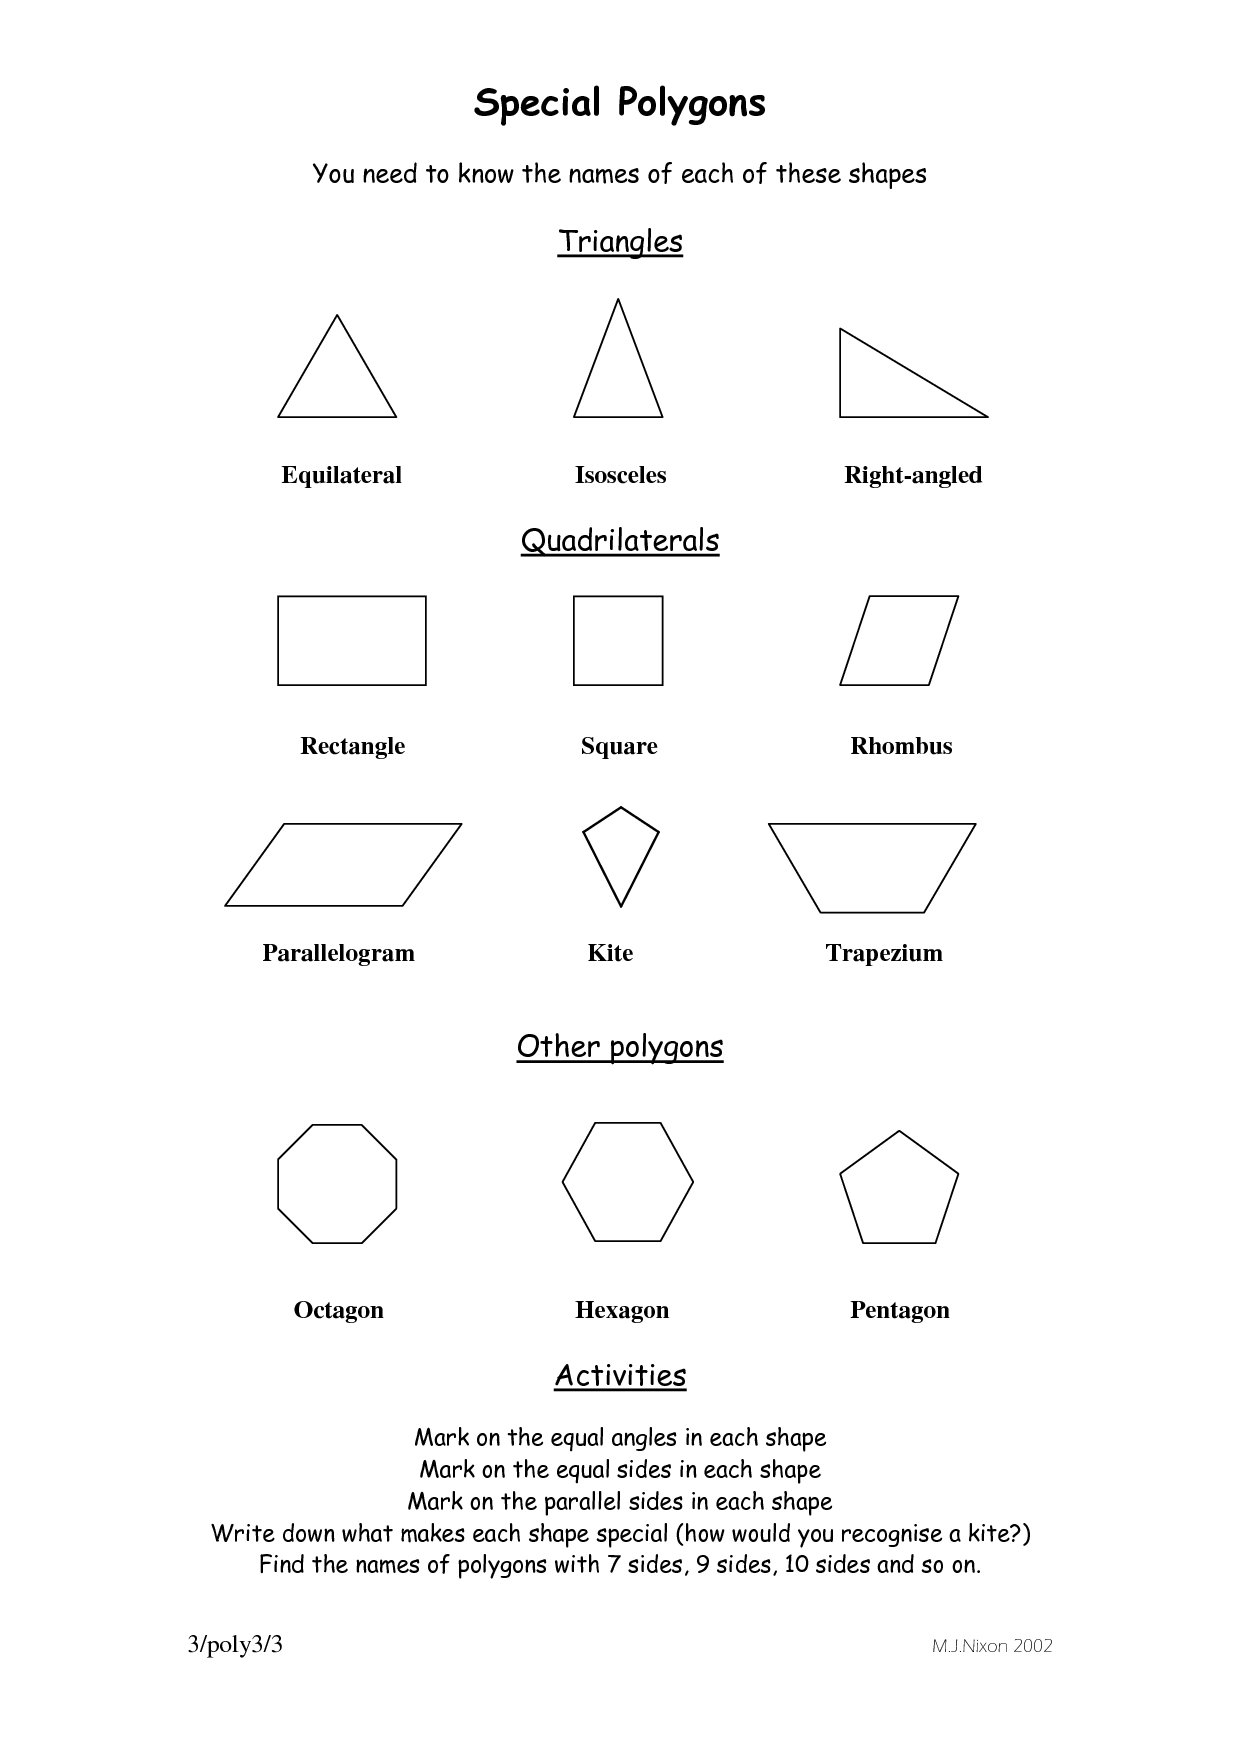 small resolution of Special Polygons   Polygon shape